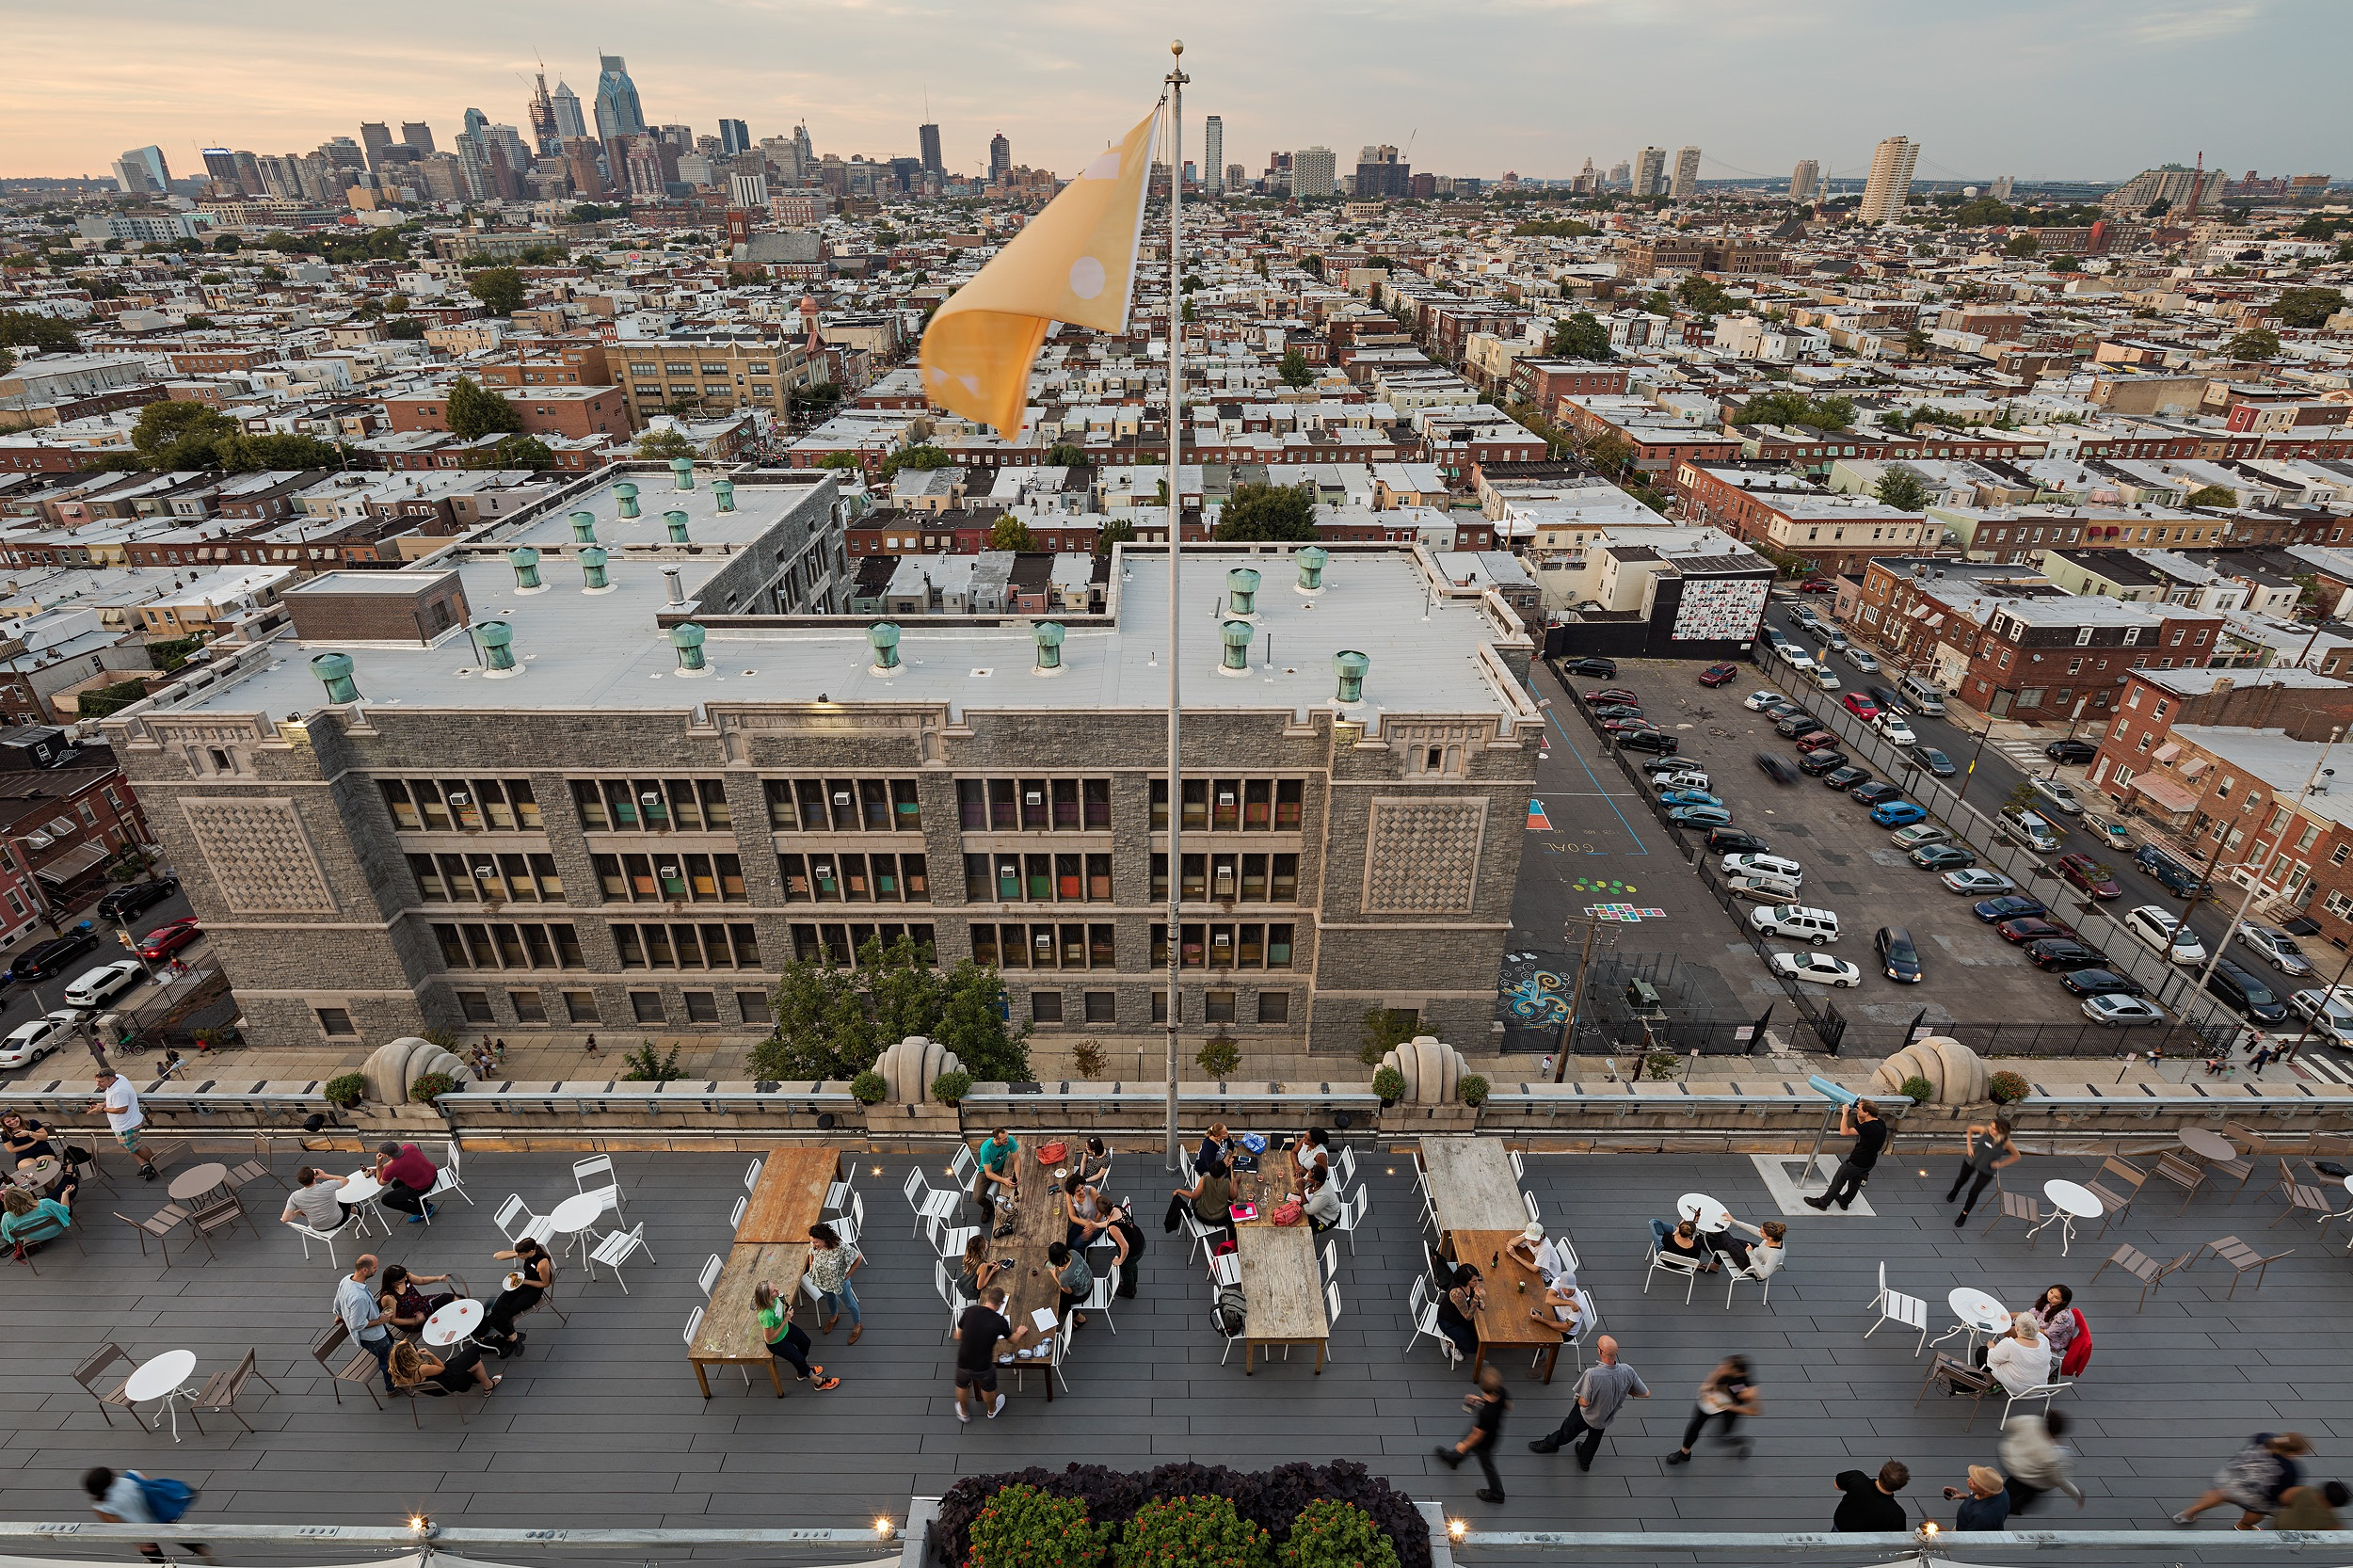 Philadelphia Spotlights Design That Solves Problems and Builds Community - Architectural DesignThe 14th annual DesignPhiladelphia festival took over the City of Brotherly Love for 11 event-packed days.